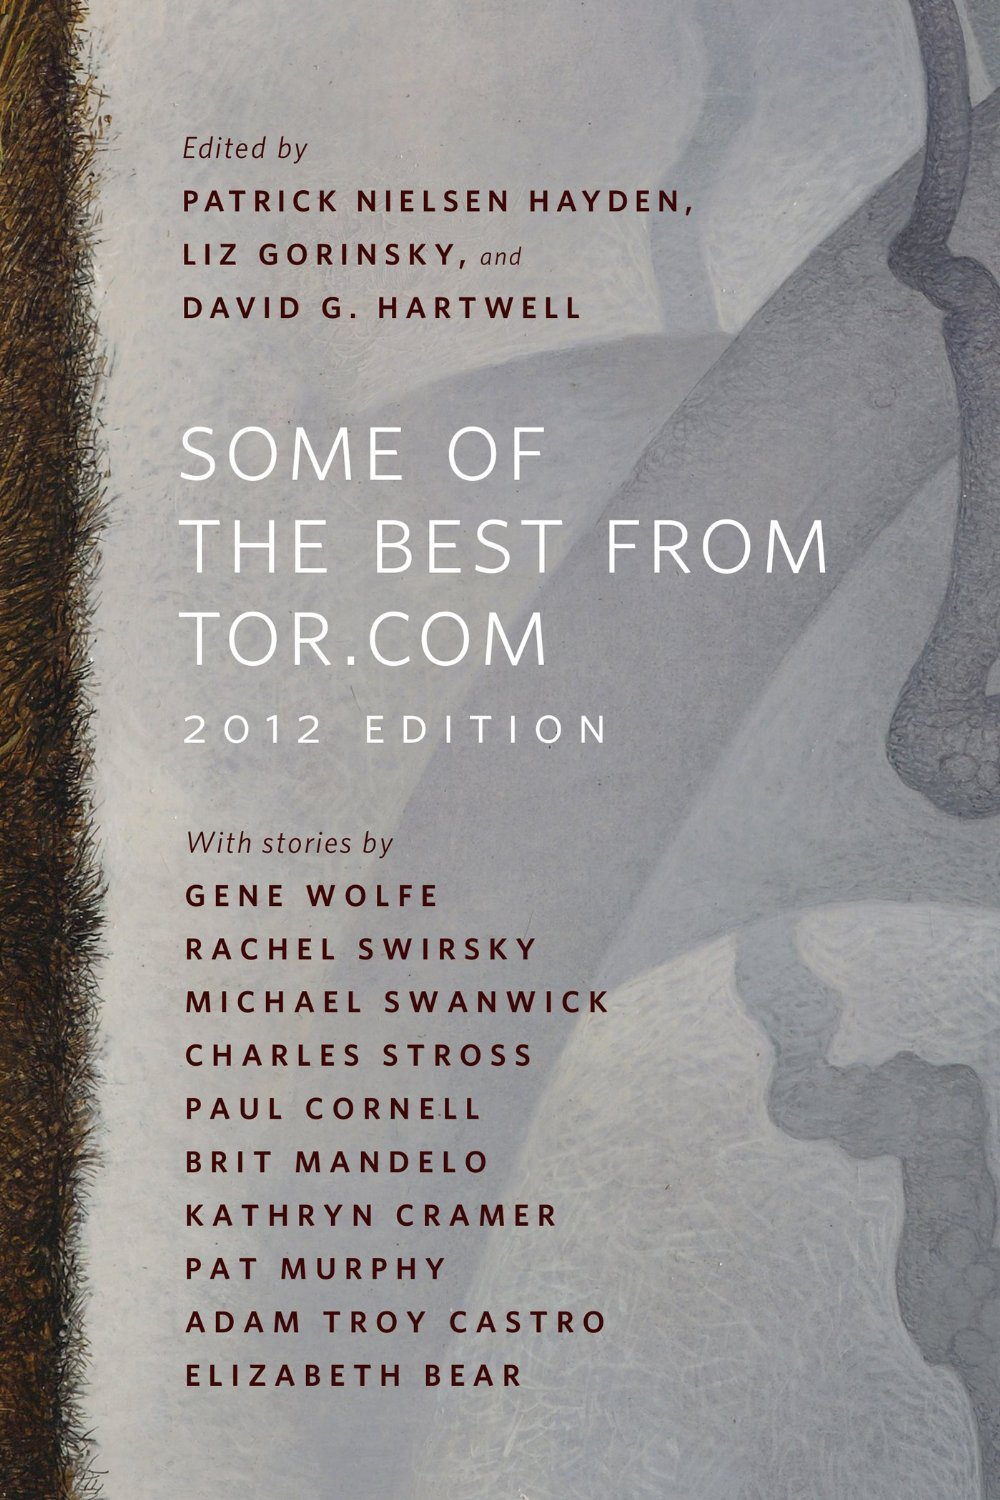 Some of the best from Tor, édition  2012